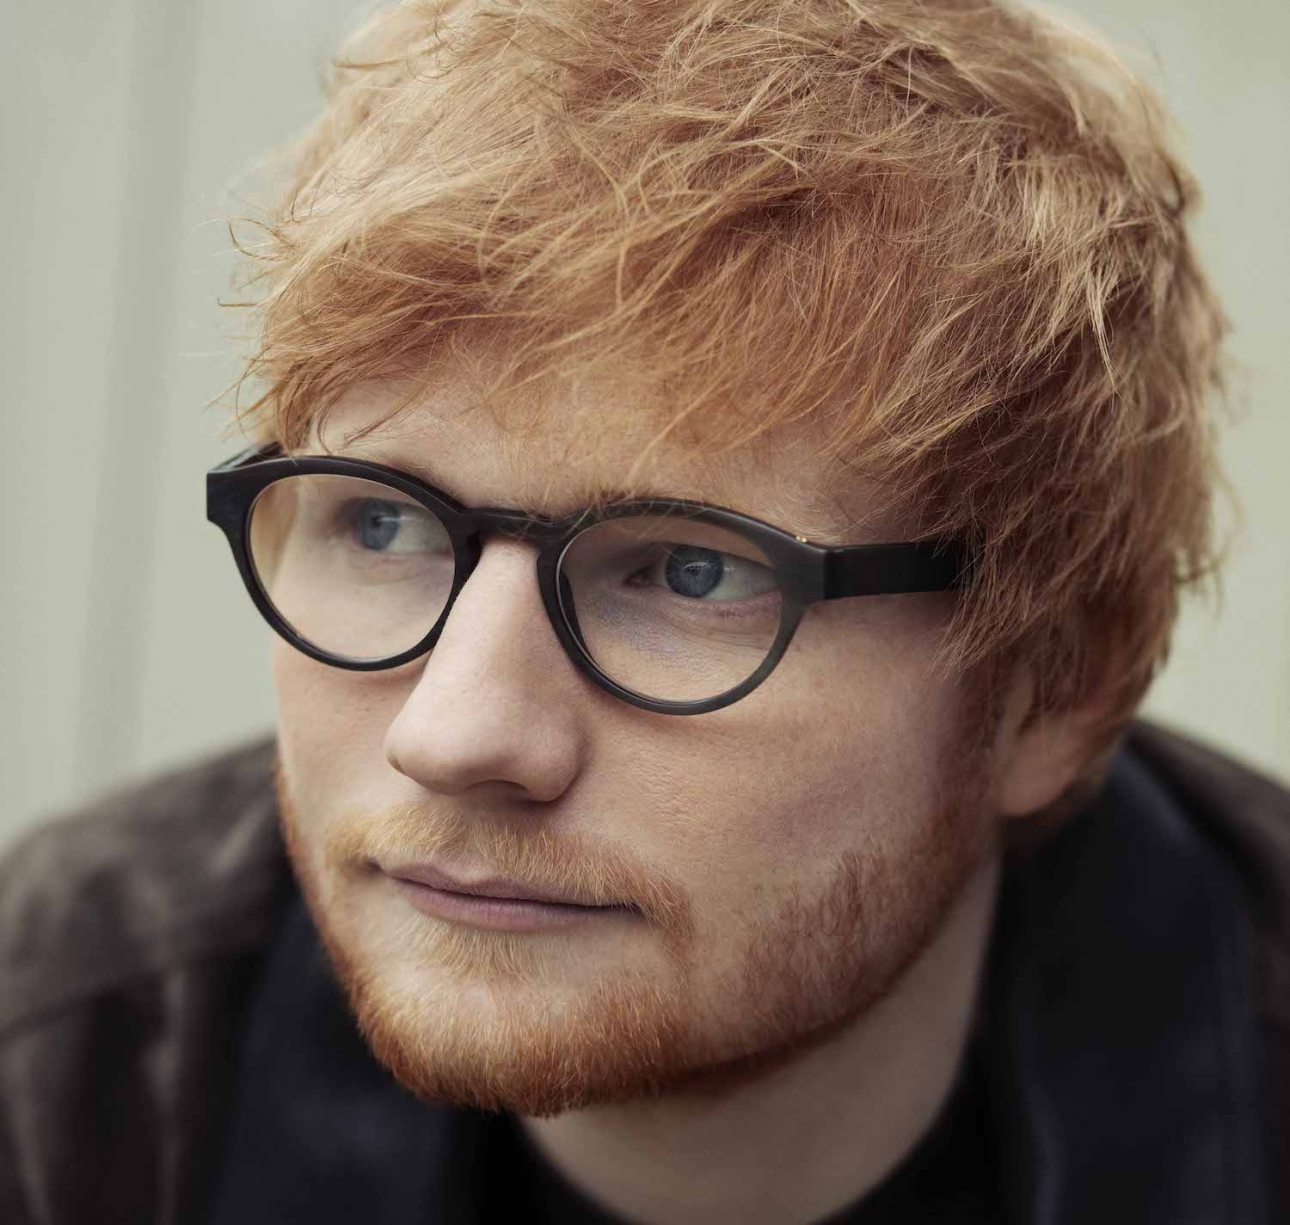 Ed Sheeran named as the UK's artist of the decade